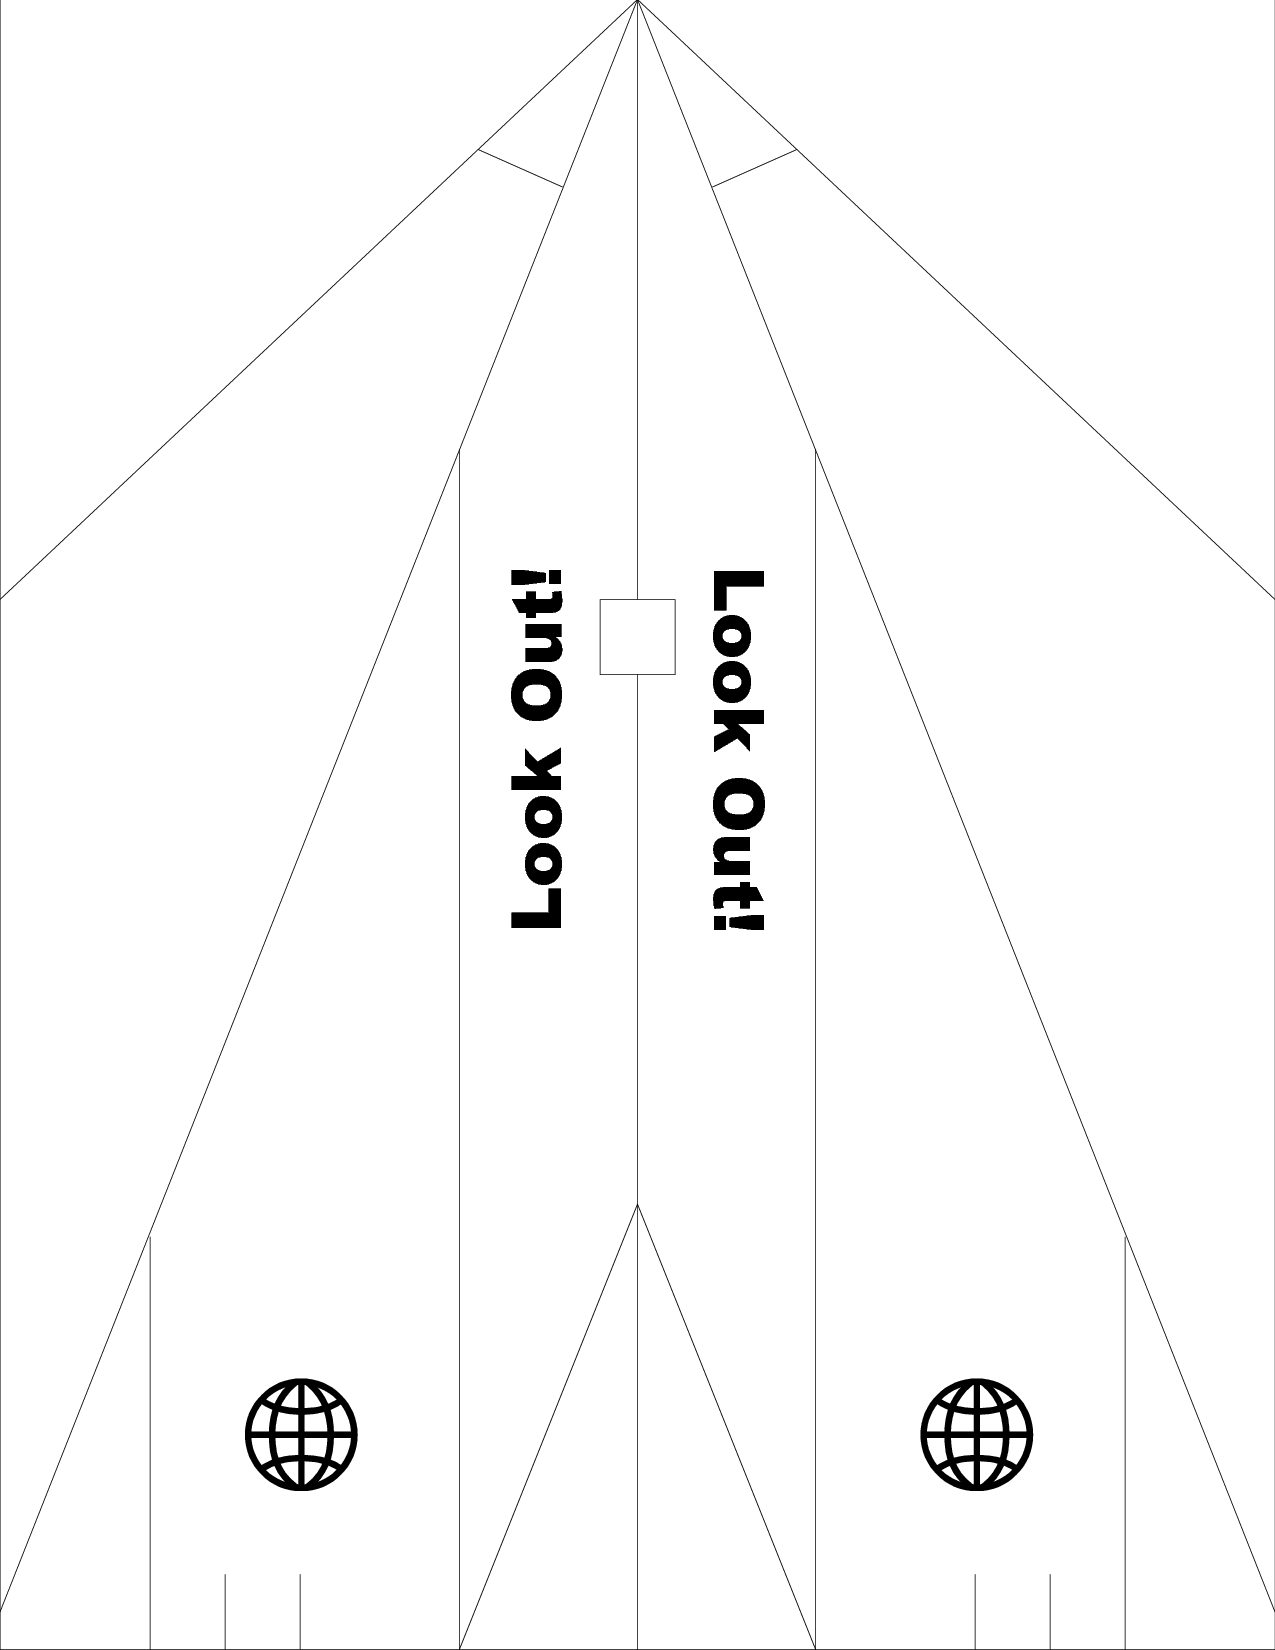 001 Printable Paper Airplane Template Ideas ~ Ulyssesroom - Free Printable Airplane Template